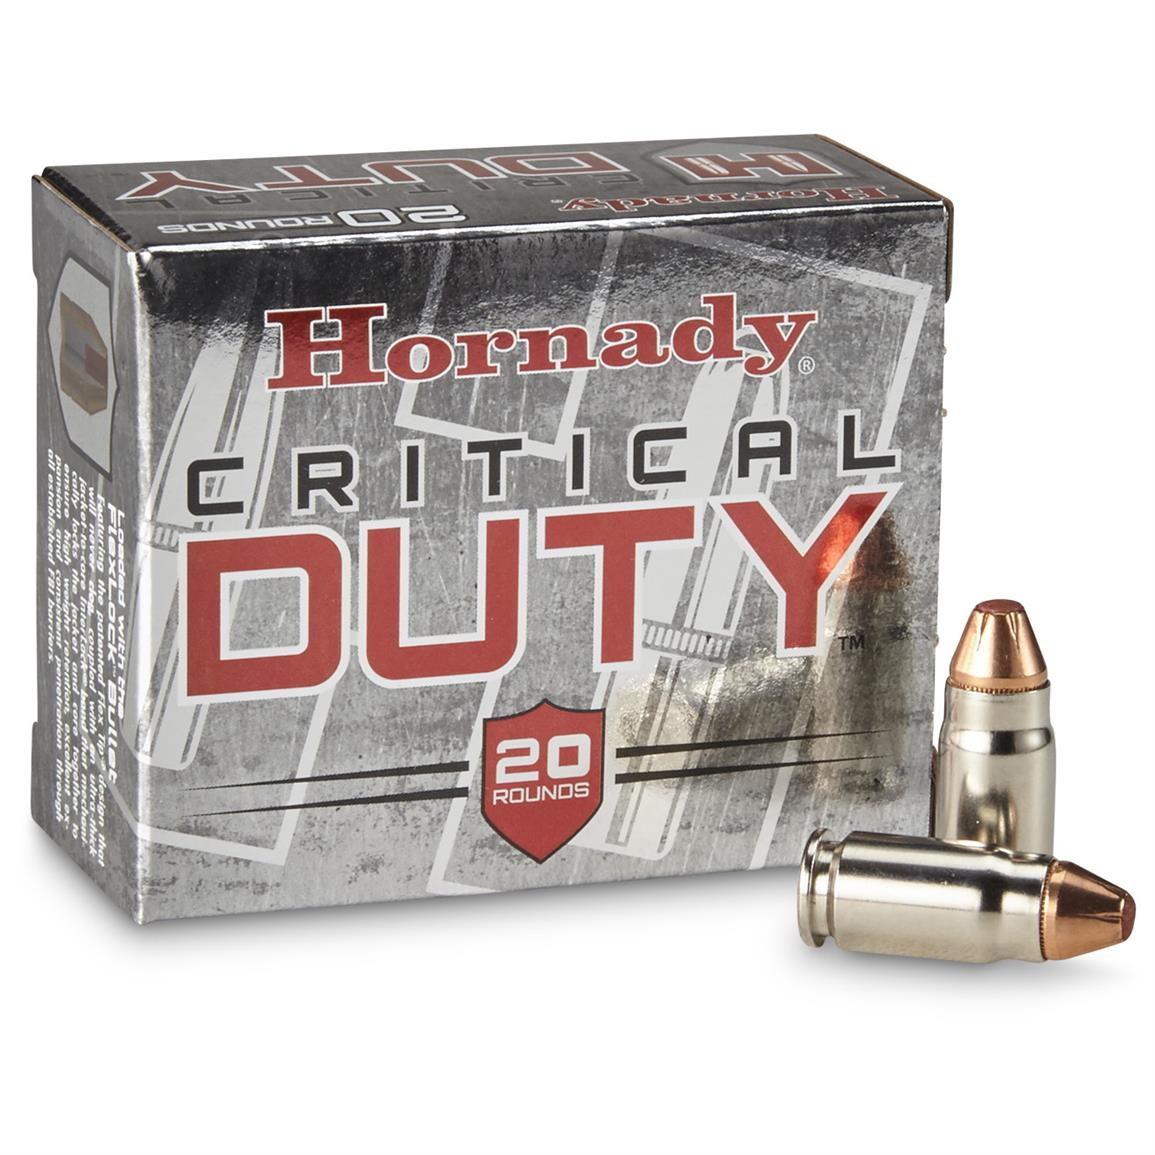 20 rounds of Hornady Critical Duty .357 Sig 135 Grain Flexlock Ammo